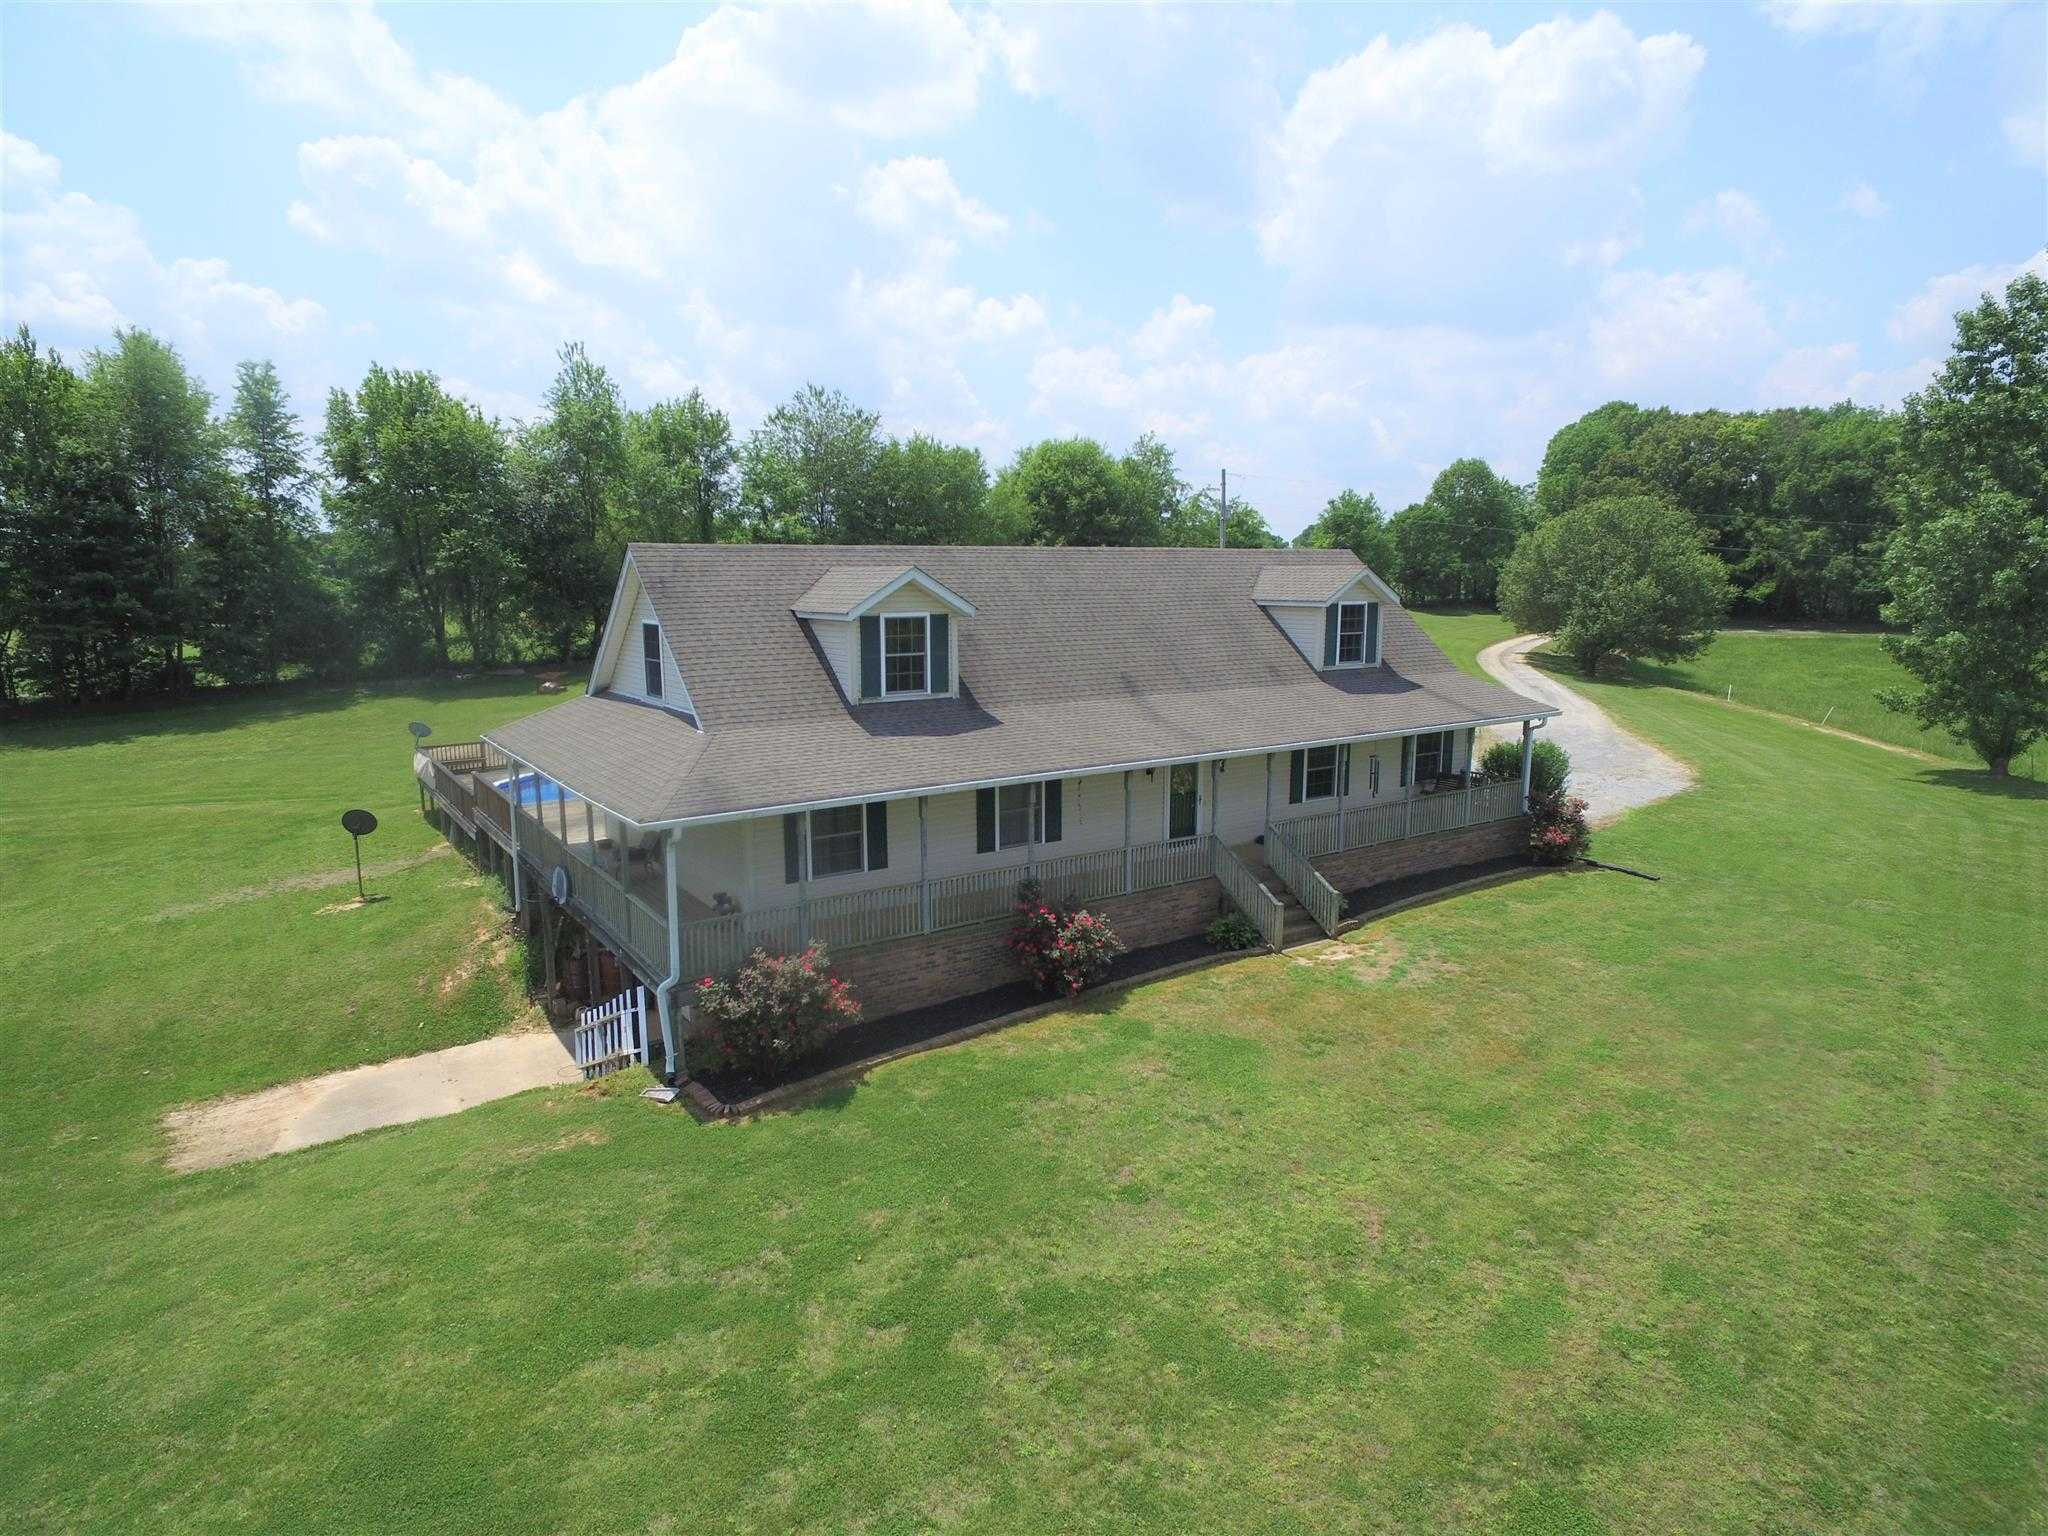 $489,900 - 3Br/3Ba -  for Sale in Na, Springfield